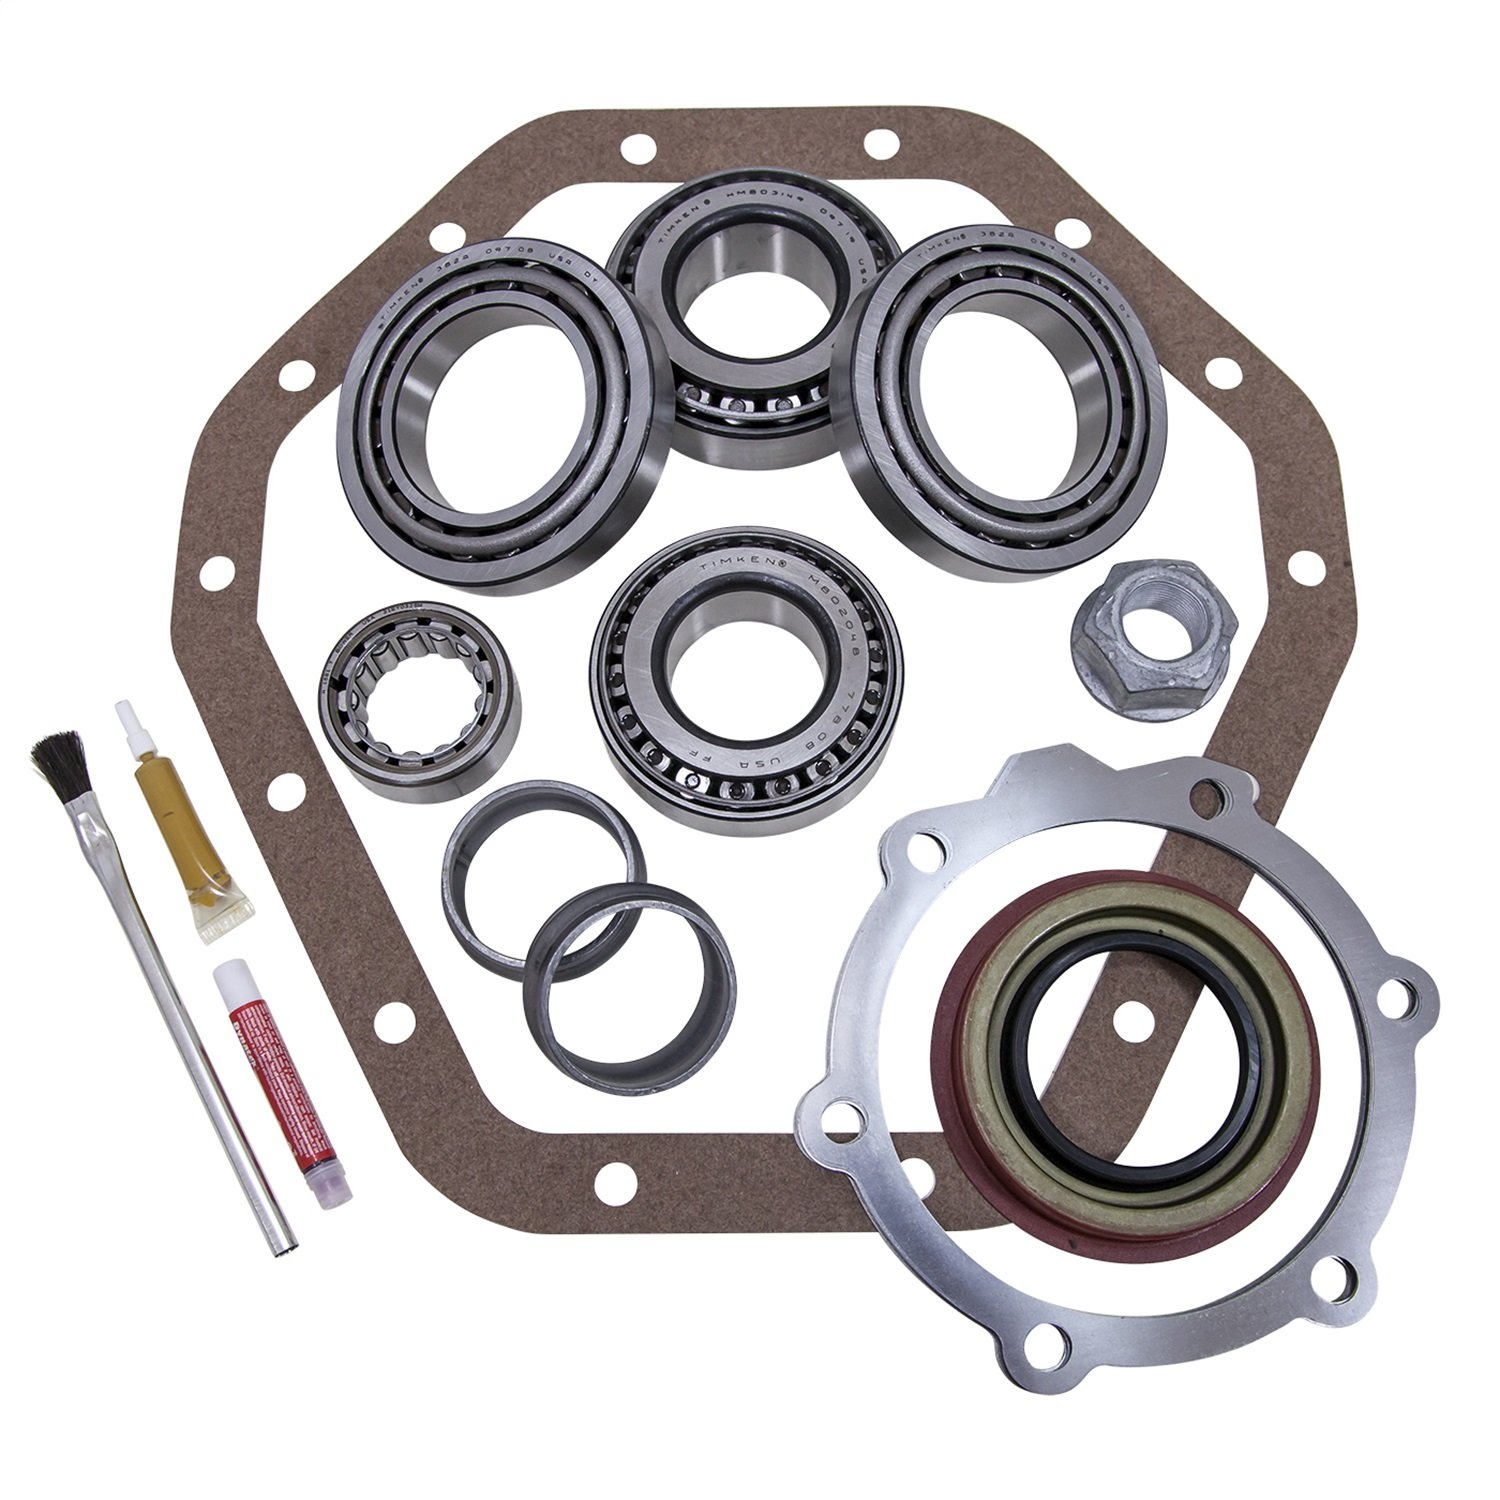 USA Standard Gear (ZK GM14T-B) Master Overhaul Kit for GM 14-Bolt Truck 10.5 Differential